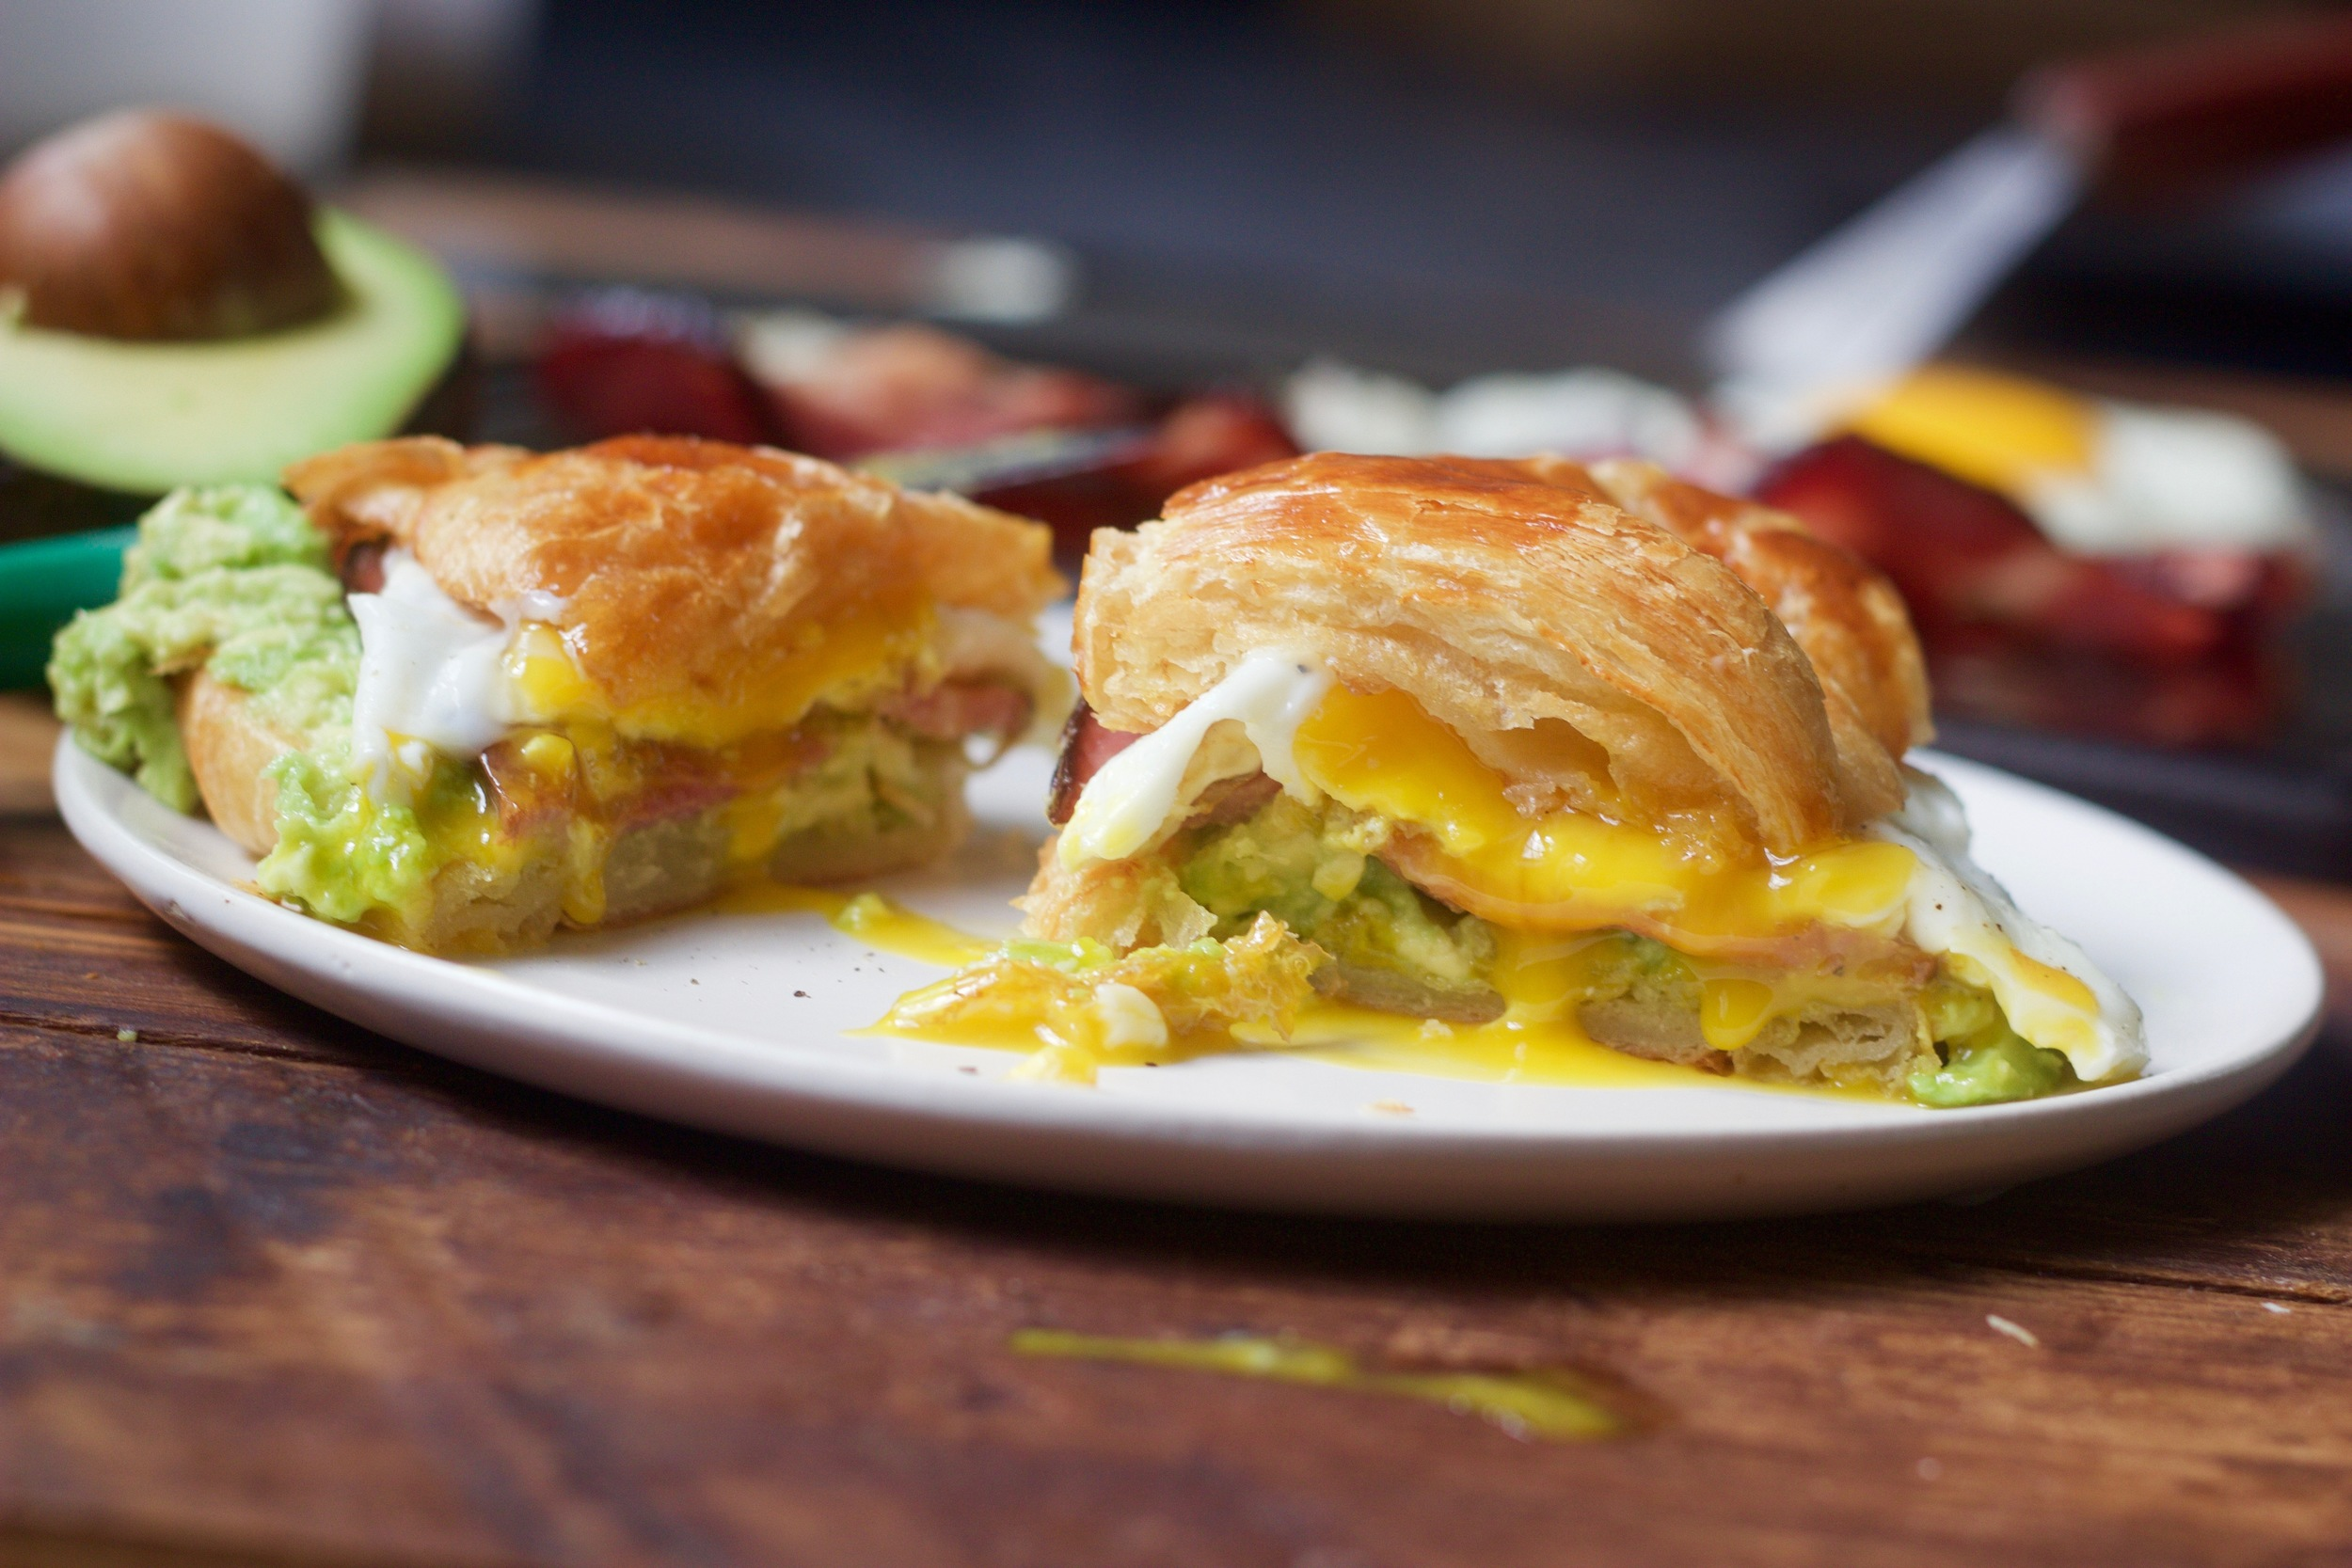 croissant with egg, avocado and Canadian Bacon